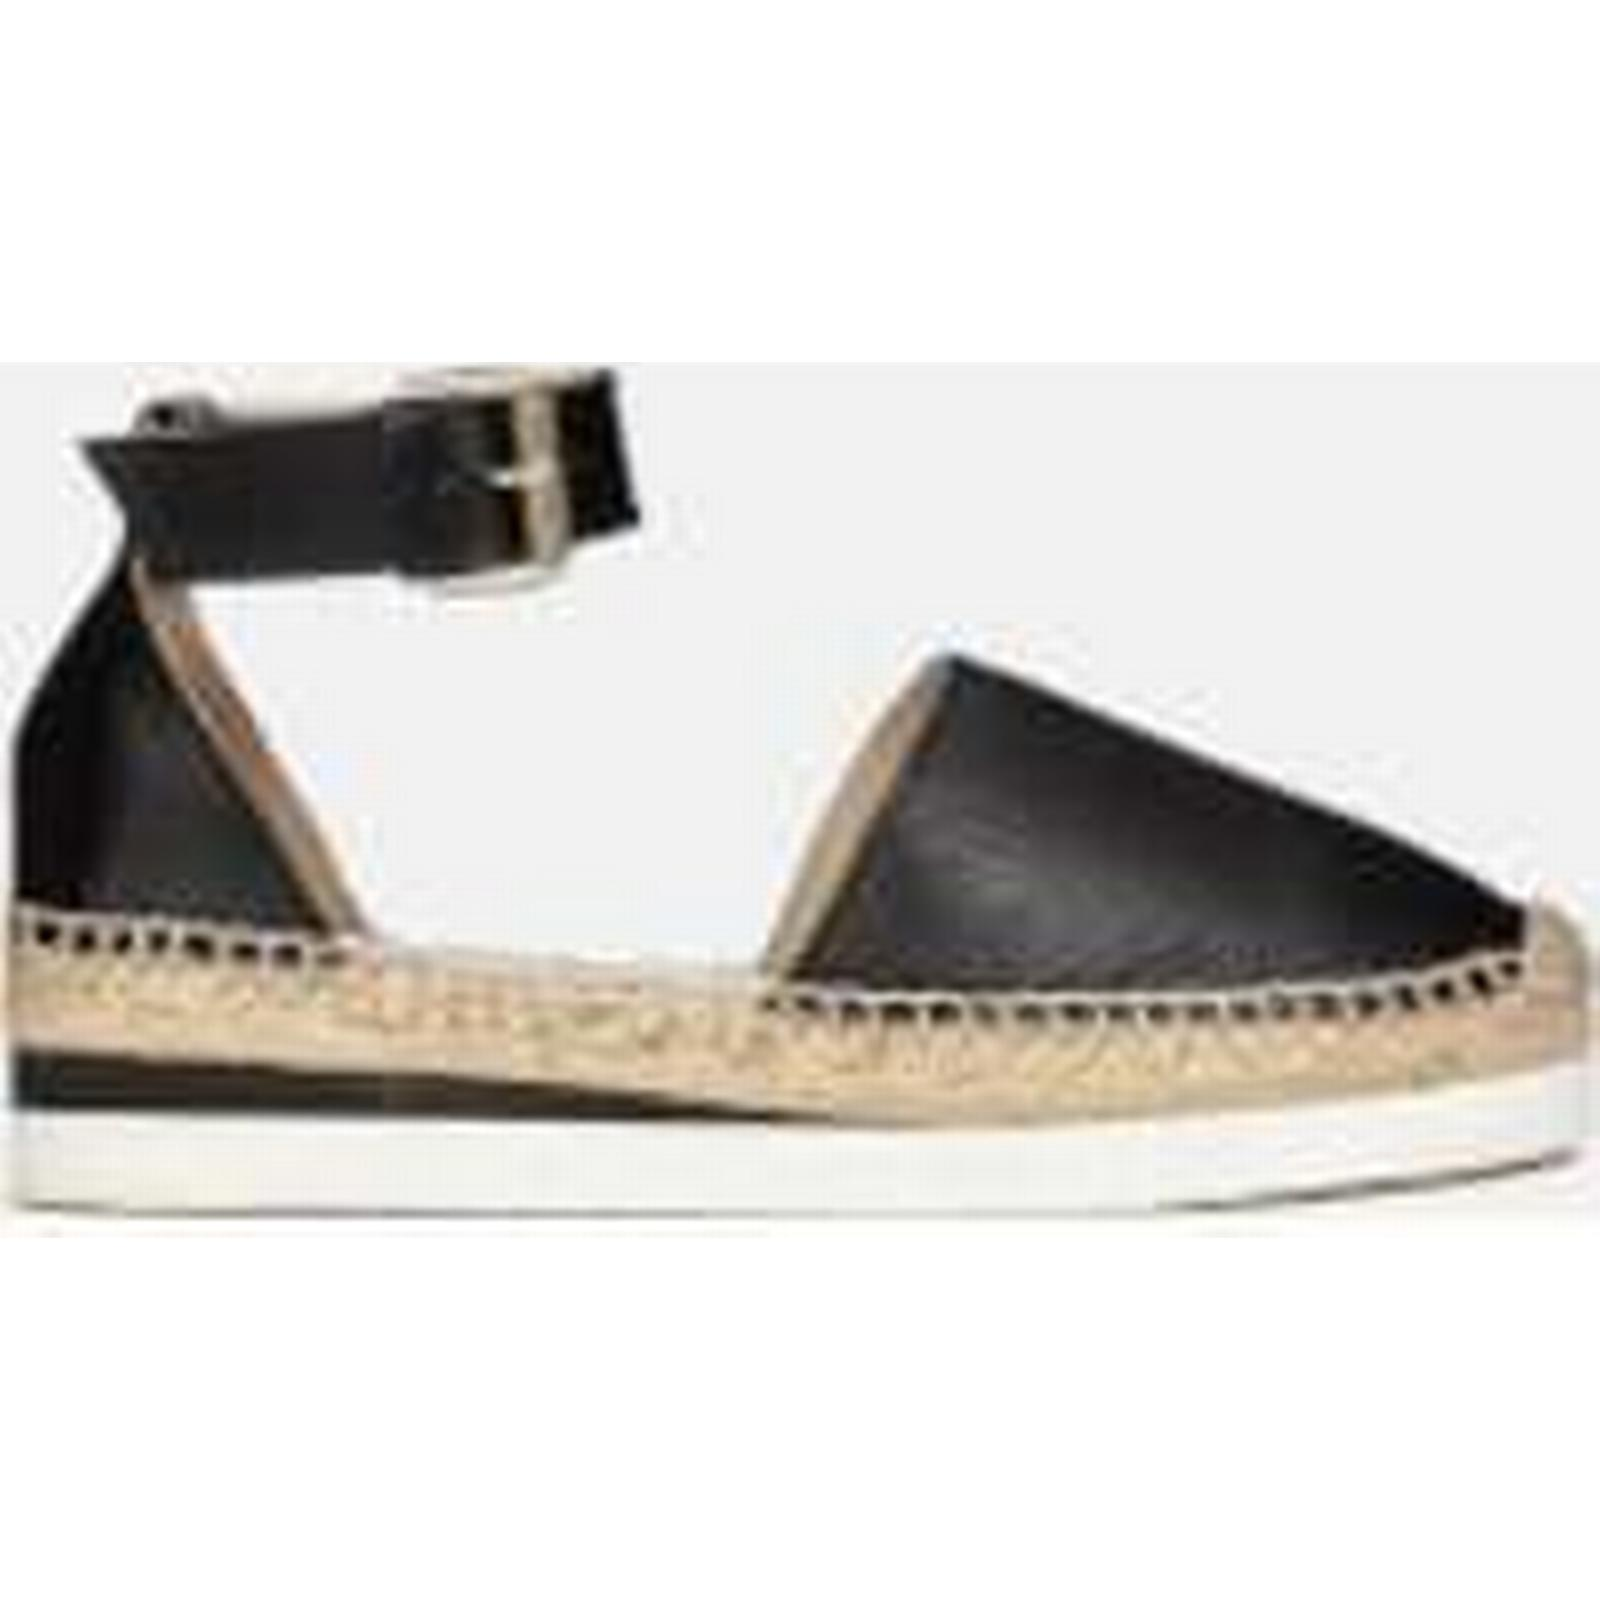 See By Flat Chloé Women's Leather Espadrille Flat By Sandals - Black - 6 - Black c6870d